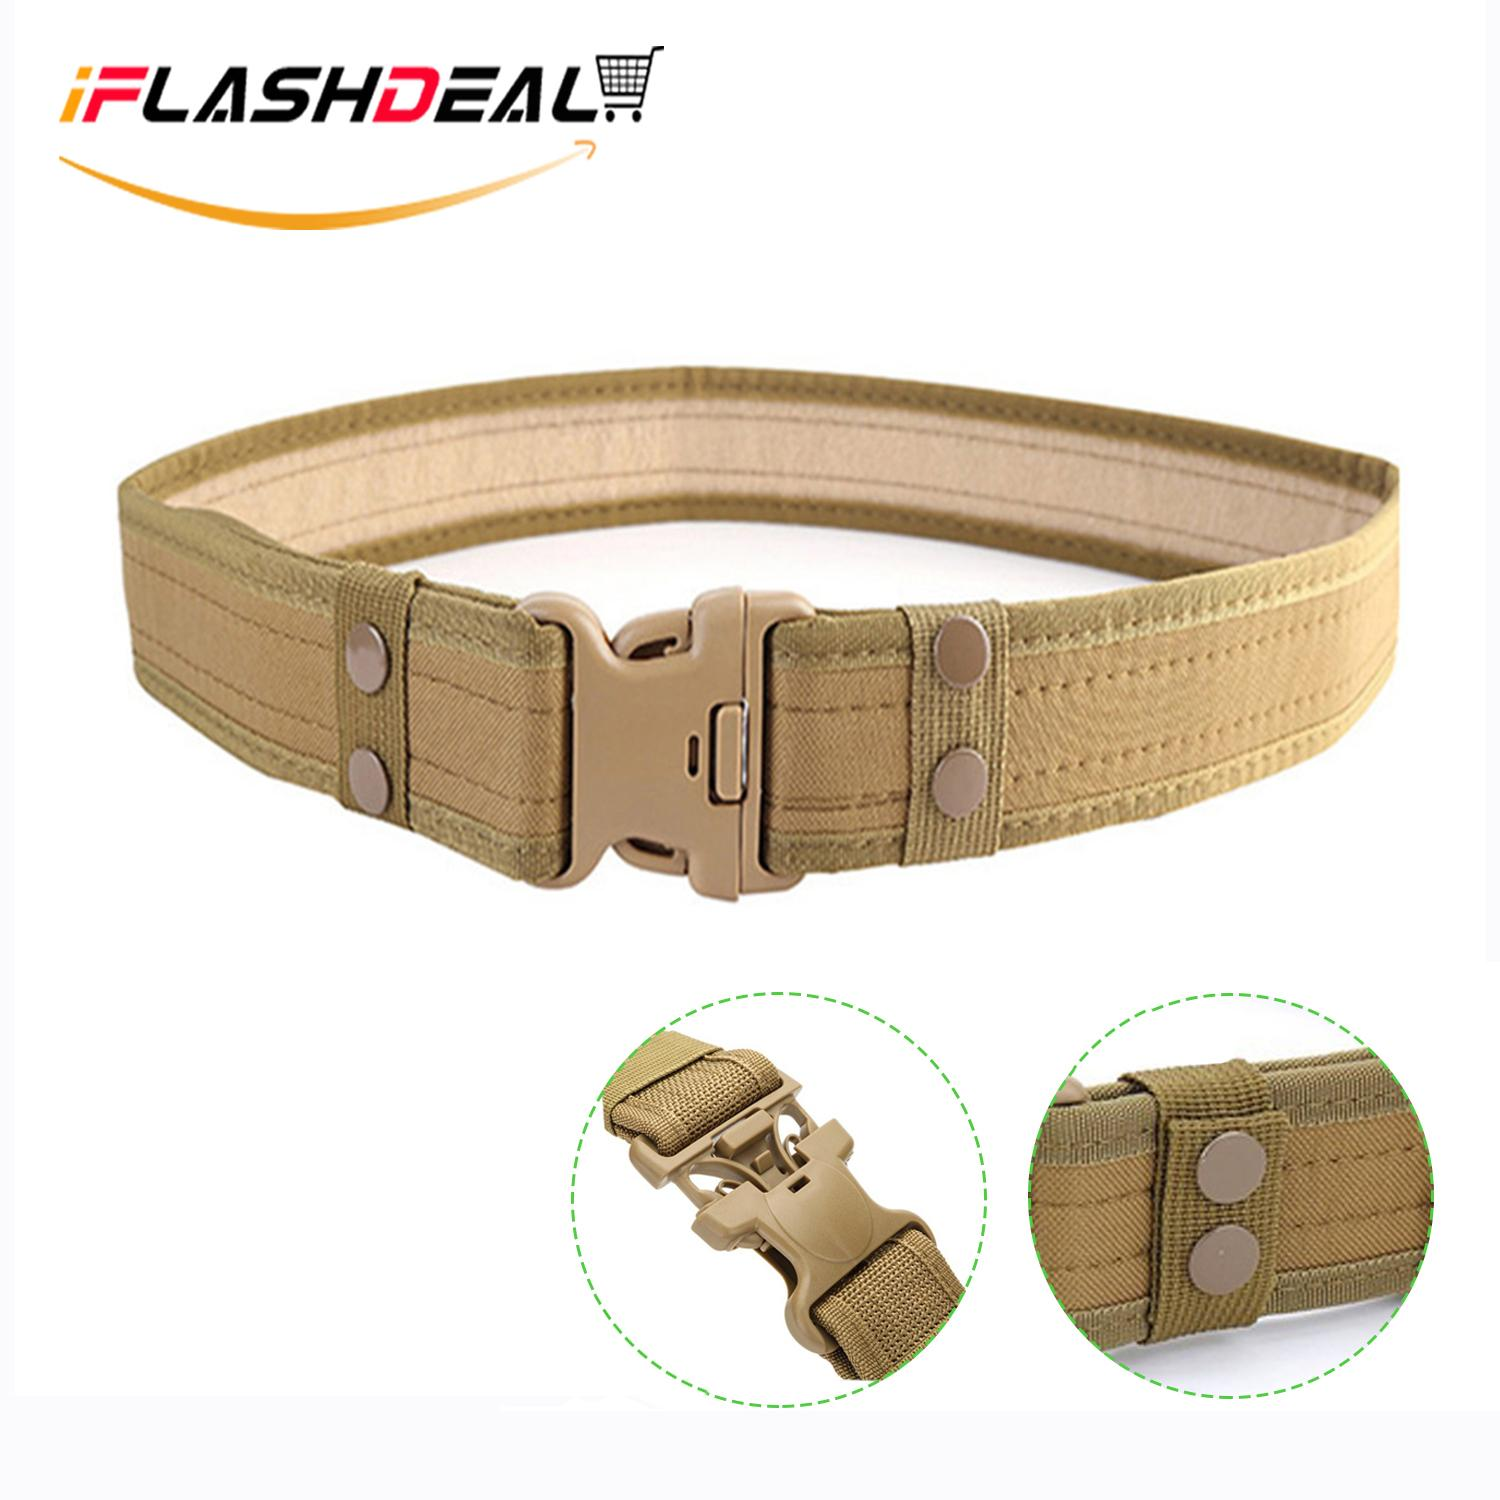 Iflashdeal Tactical Combat Belt Utility Gear Adjustable Heavy Duty Police Military Equipment With Side Release Buckle By Iflashdeal.